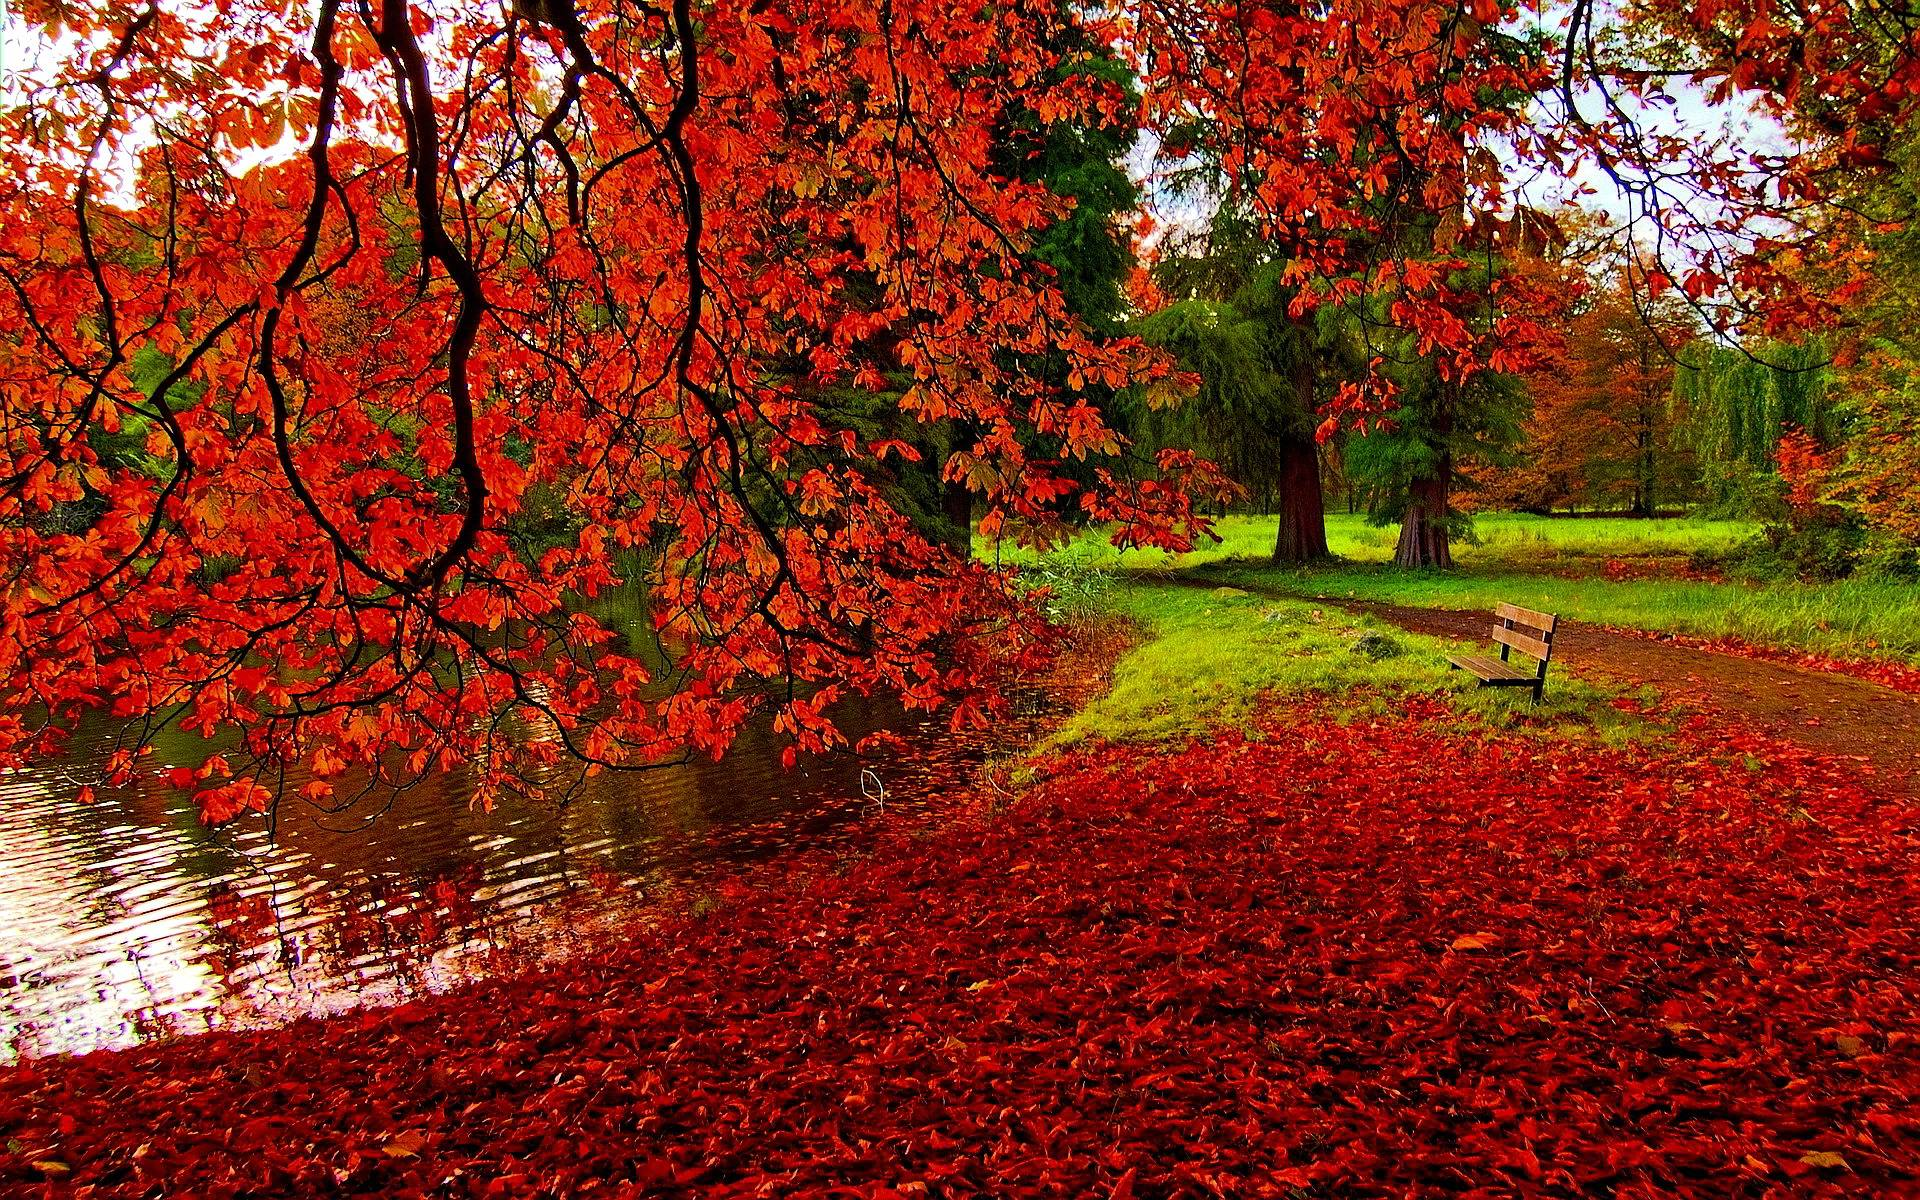 Autumn Wallpaper Full HD